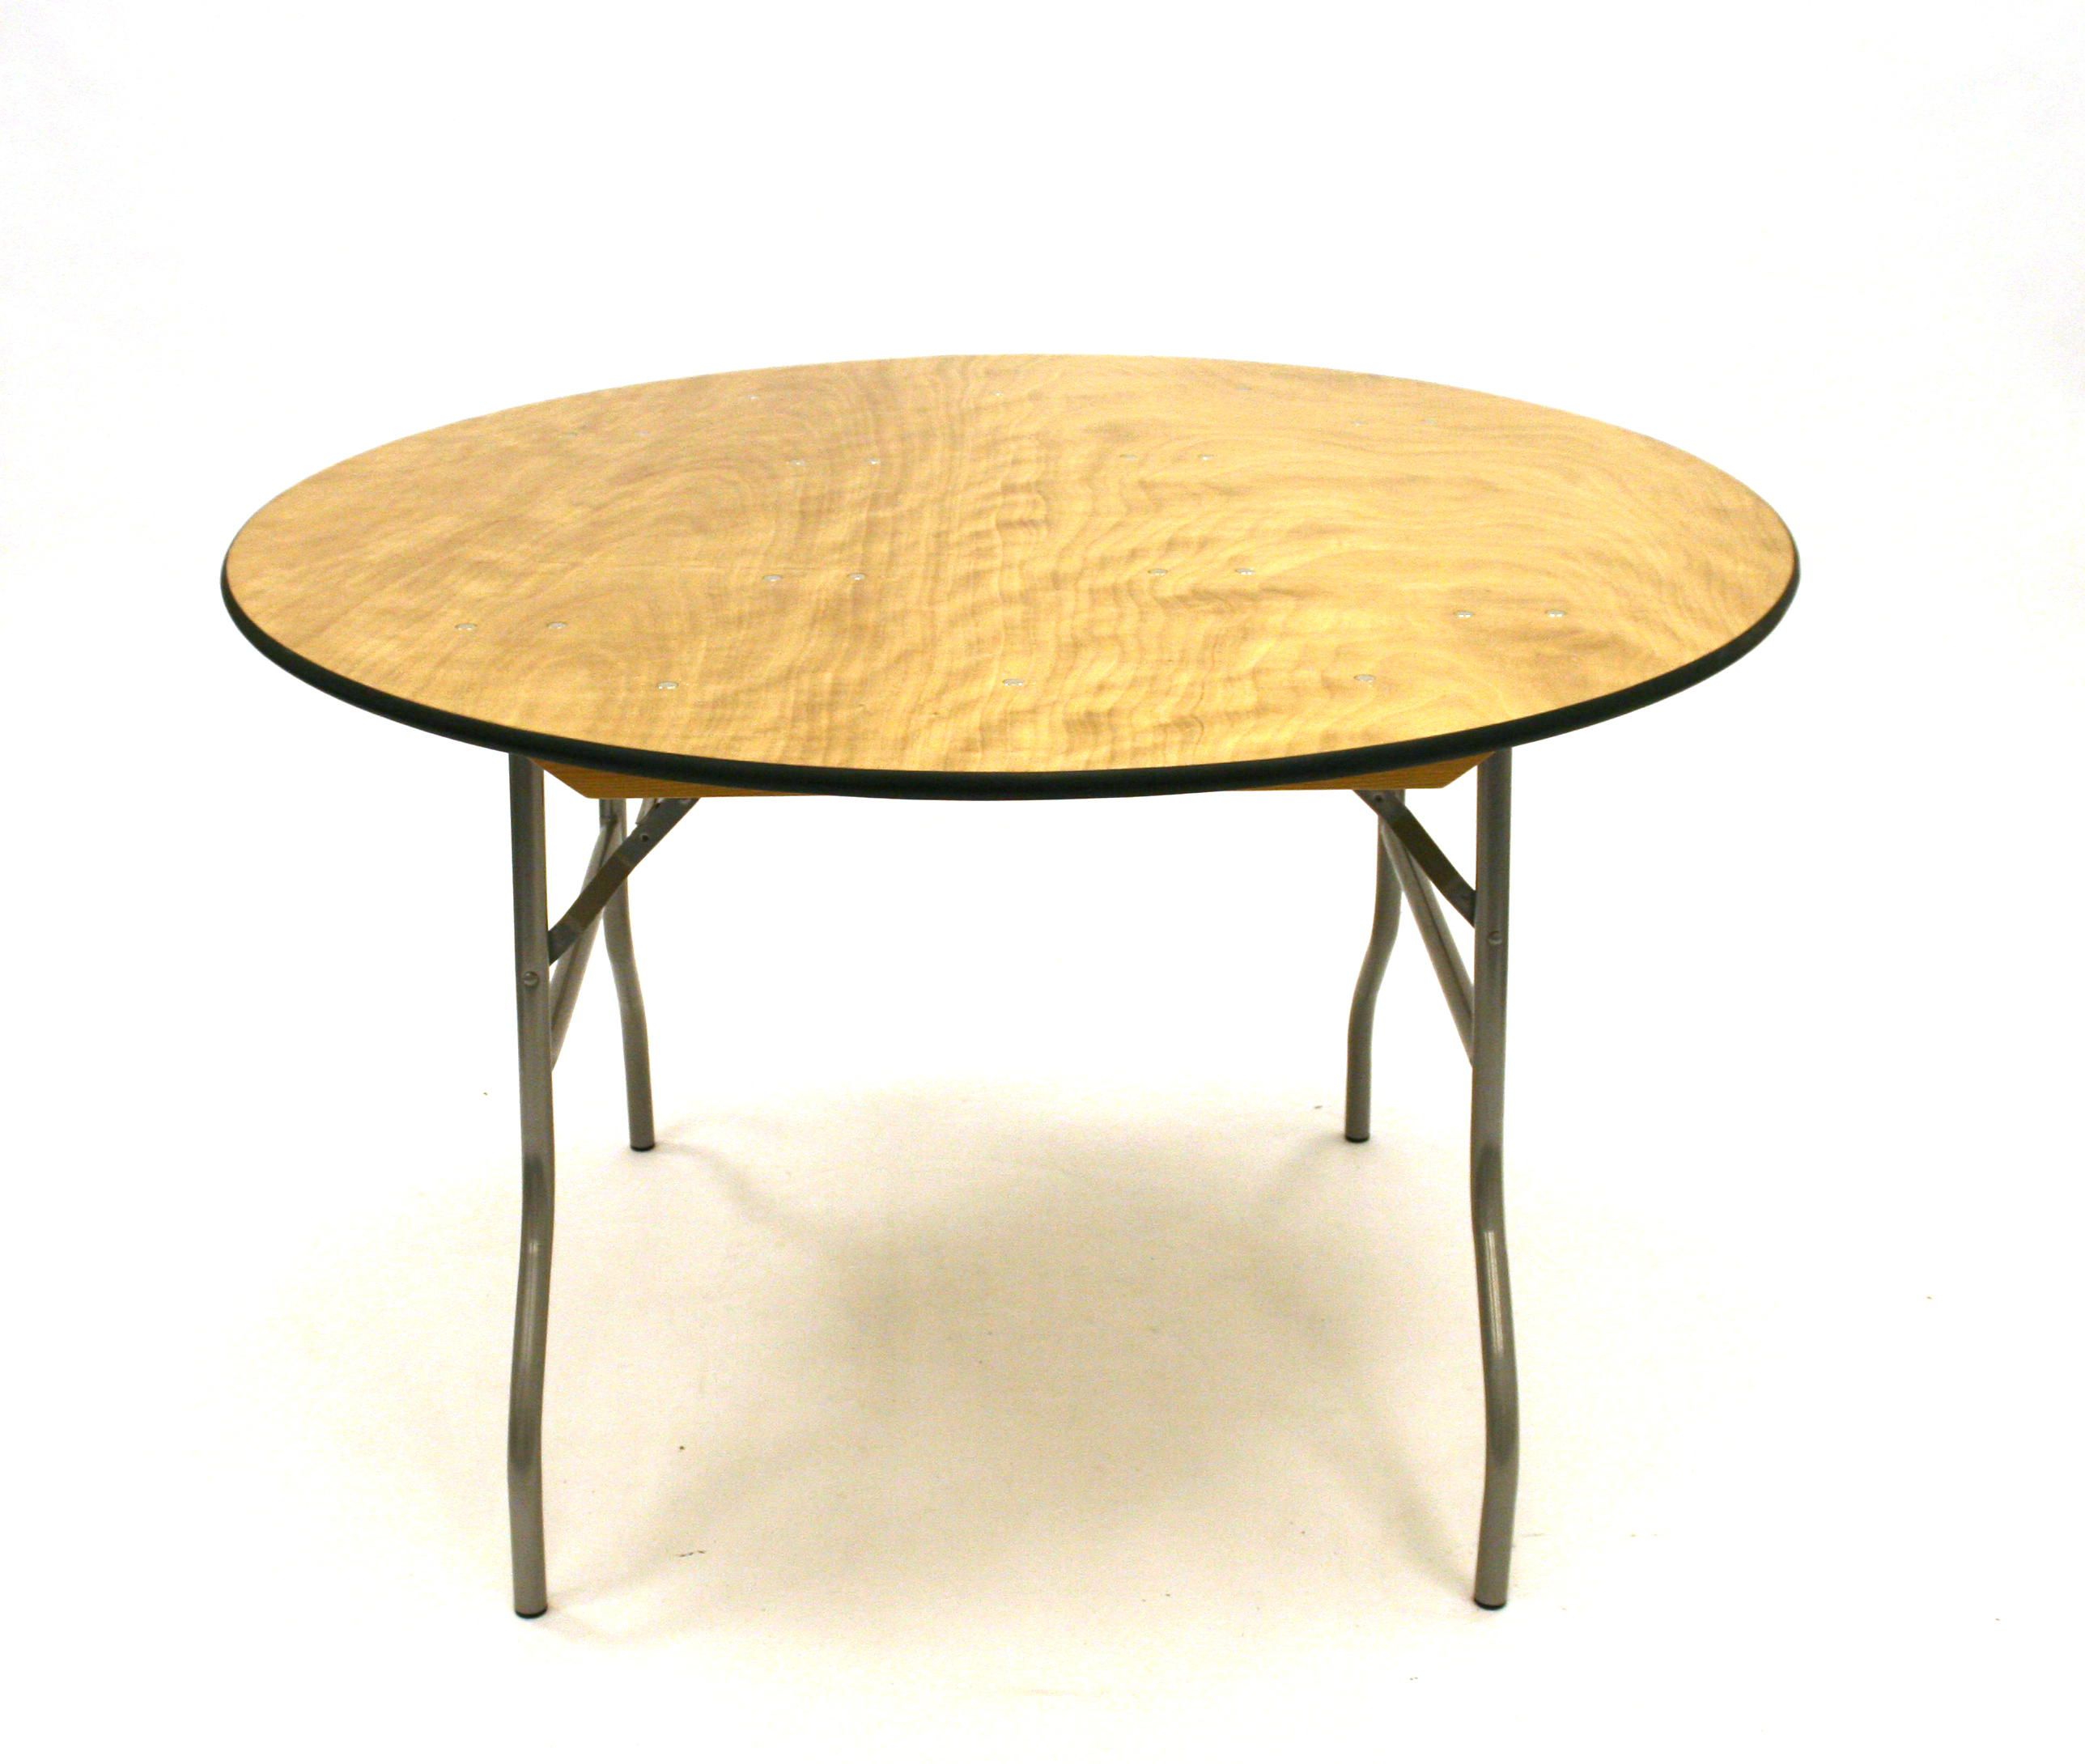 Round Banqueting Table - 5' Diameter Varnished - BE Furniture Sales